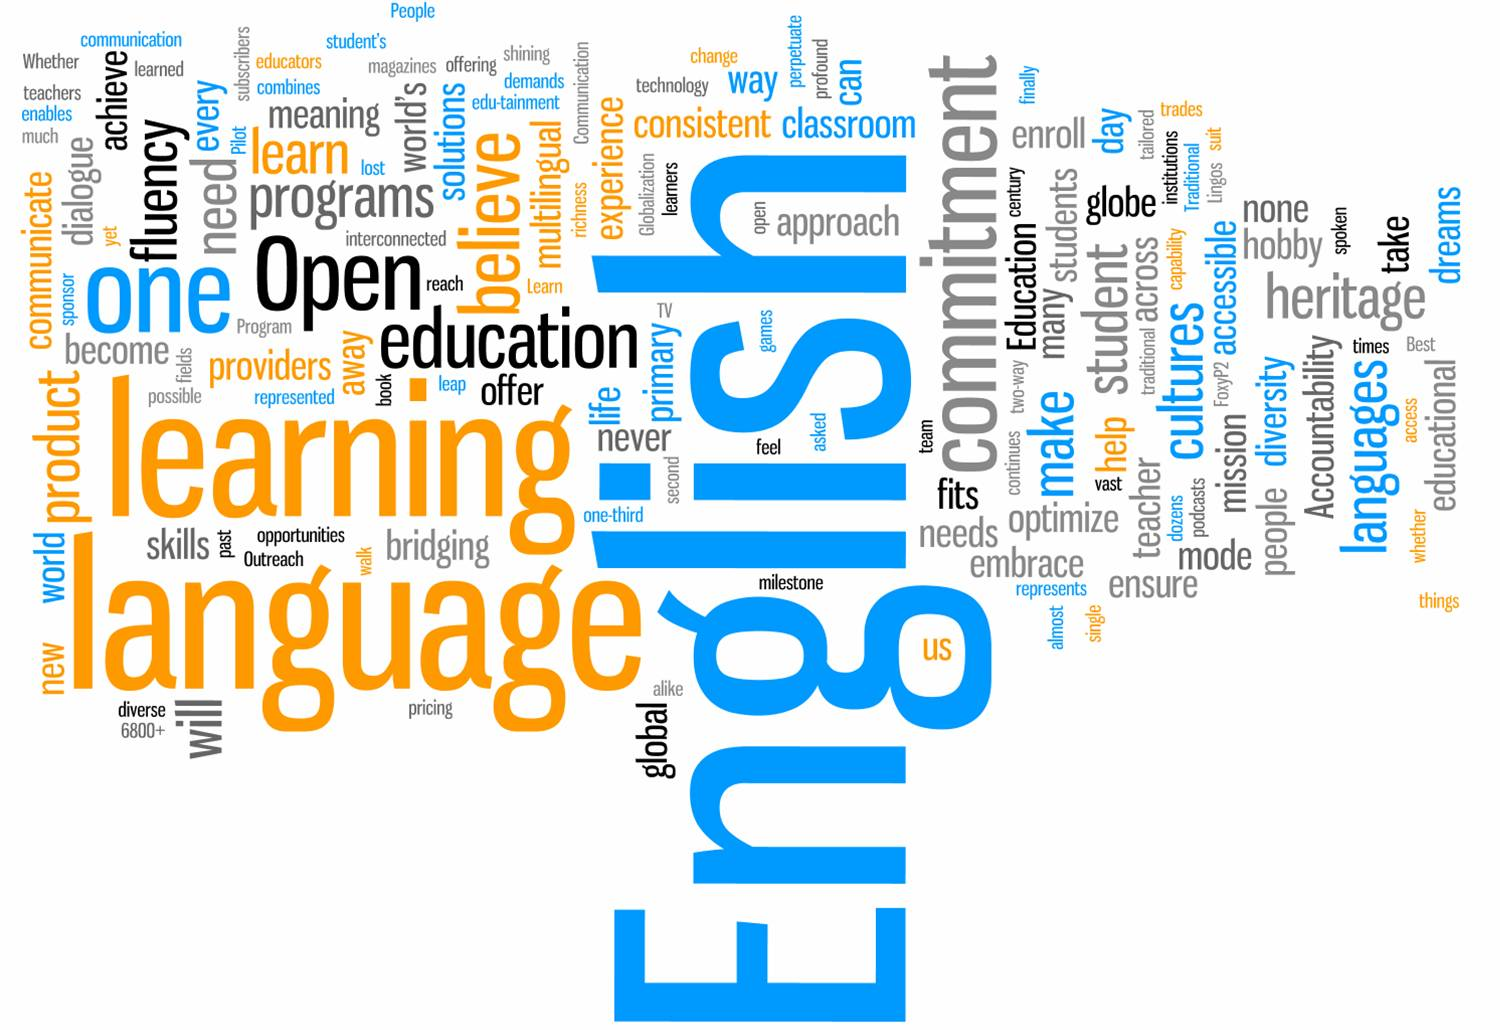 should english be declared the official This weeks poll is on whether english should be declared the official language of the us the impact this would have would be across the board from education to forms printed throughout the country.